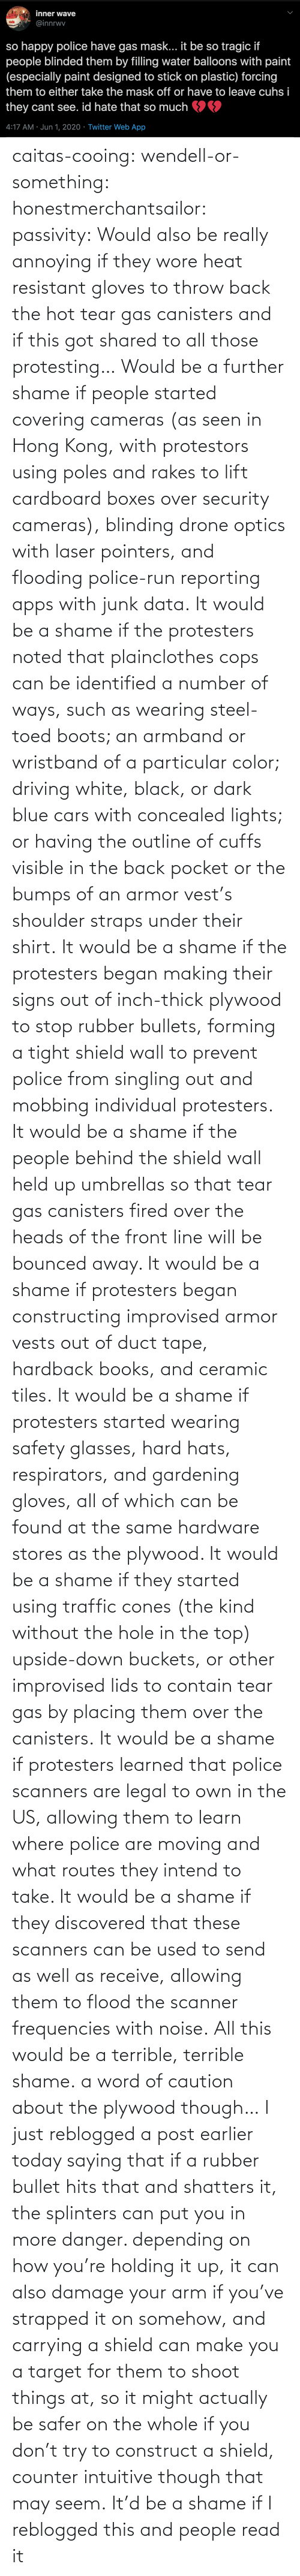 About The: caitas-cooing:  wendell-or-something: honestmerchantsailor:  passivity: Would also be really annoying if they wore heat resistant gloves to throw back the hot tear gas canisters and if this got shared to all those protesting… Would be a further shame if people started covering cameras (as seen in Hong Kong, with protestors using poles and rakes to lift cardboard boxes over security cameras), blinding drone optics with laser pointers, and flooding police-run reporting apps with junk data. It would be a shame if the protesters noted that plainclothes cops can be identified a number of ways, such as wearing steel-toed boots; an armband or wristband of a particular color; driving white, black, or dark blue cars with concealed lights; or having the outline of cuffs visible in the back pocket or the bumps of an armor vest's shoulder straps under their shirt. It would be a shame if the protesters began making their signs out of inch-thick plywood to stop rubber bullets, forming a tight shield wall to prevent police from singling out and mobbing individual protesters. It would be a shame if the people behind the shield wall held up umbrellas so that tear gas canisters fired over the heads of the front line will be bounced away. It would be a shame if protesters began constructing improvised armor vests out of duct tape, hardback books, and ceramic tiles. It would be a shame if protesters started wearing safety glasses, hard hats, respirators, and gardening gloves, all of which can be found at the same hardware stores as the plywood. It would be a shame if they started using traffic cones (the kind without the hole in the top) upside-down buckets, or other improvised lids to contain tear gas by placing them over the canisters. It would be a shame if protesters learned that police scanners are legal to own in the US, allowing them to learn where police are moving and what routes they intend to take. It would be a shame if they discovered that these scanners can be used to send as well as receive, allowing them to flood the scanner frequencies with noise. All this would be a terrible, terrible shame.    a word of caution about the plywood though… I just reblogged a post earlier today saying that if a rubber bullet hits that and shatters it, the splinters can put you in more danger. depending on how you're holding it up, it can also damage your arm if you've strapped it on somehow, and carrying a shield can make you a target for them to shoot things at, so it might actually be safer on the whole if you don't try to construct a shield, counter intuitive though that may seem.    It'd be a shame if I reblogged this and people read it